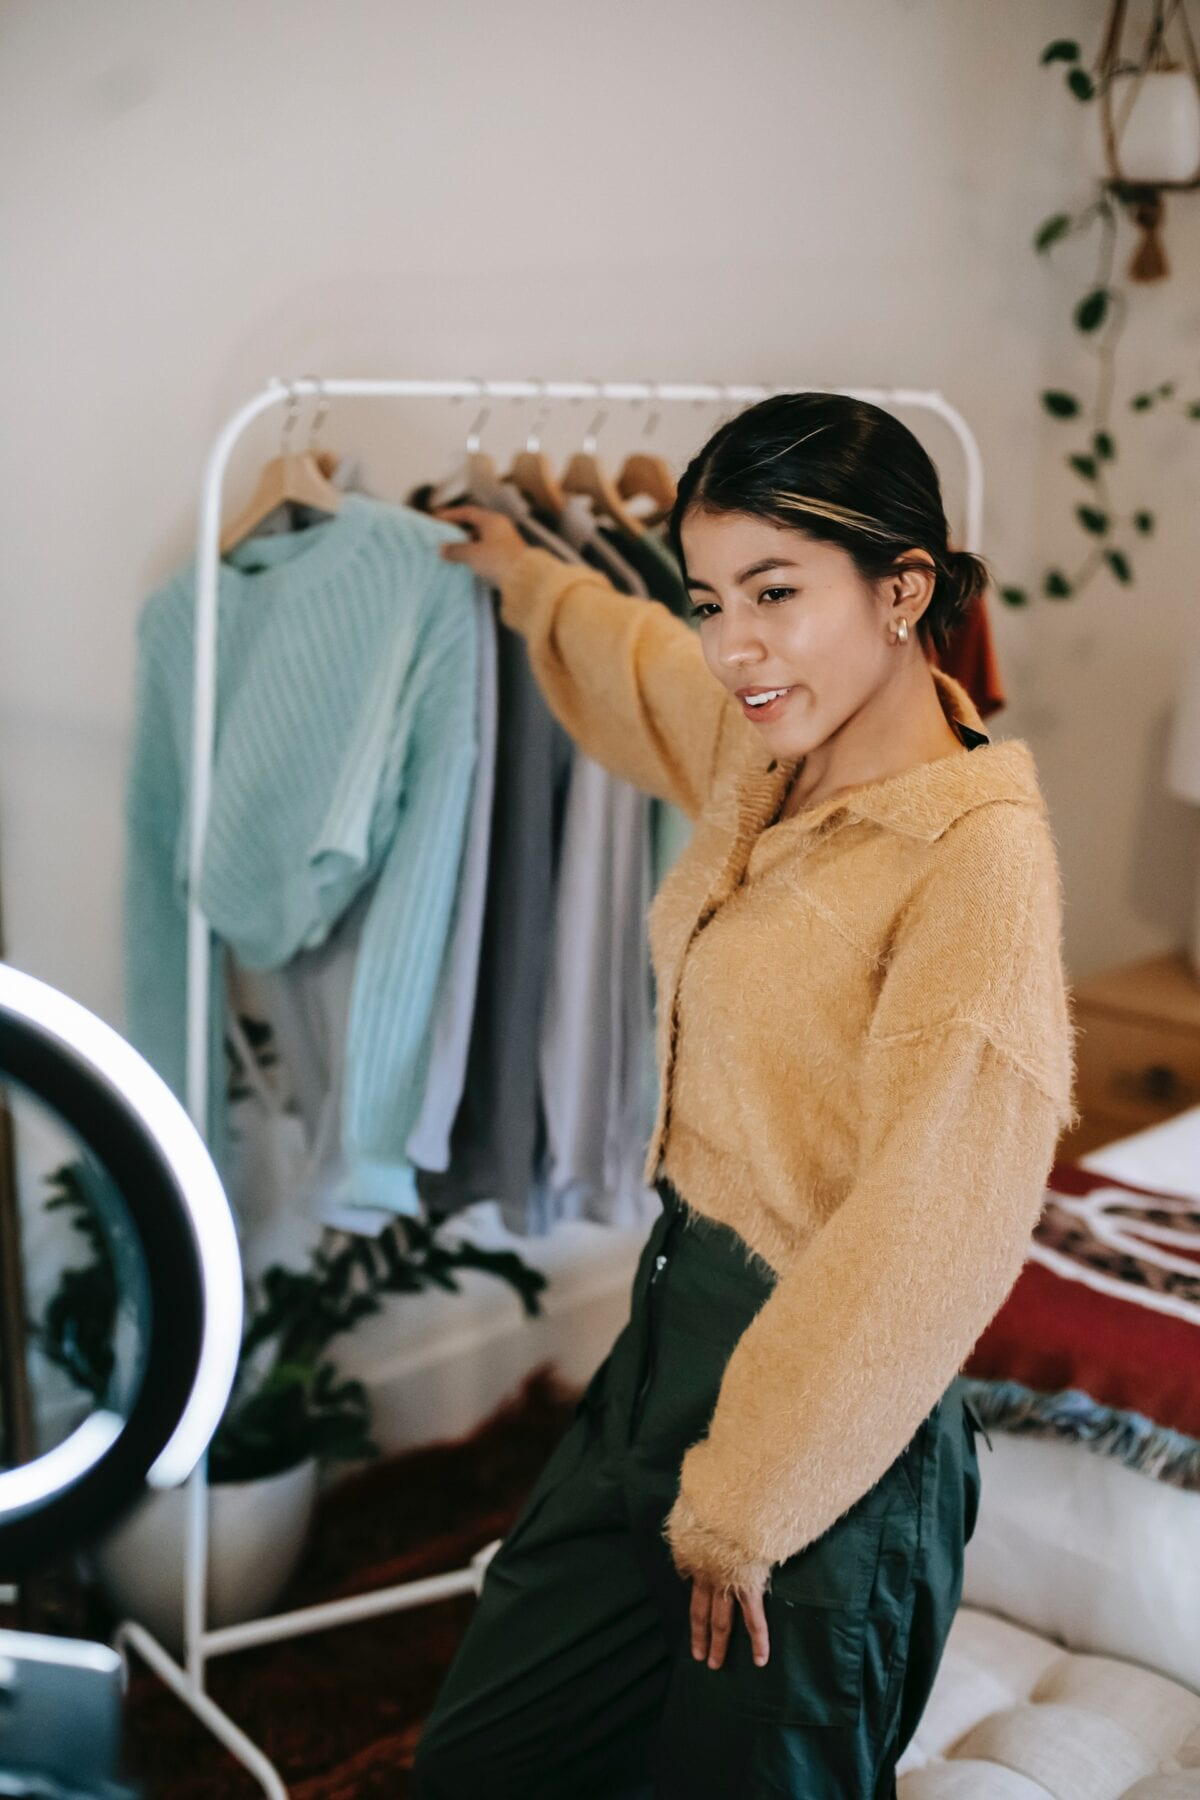 Trendy smiling woman taking clothes from rail while shooting video